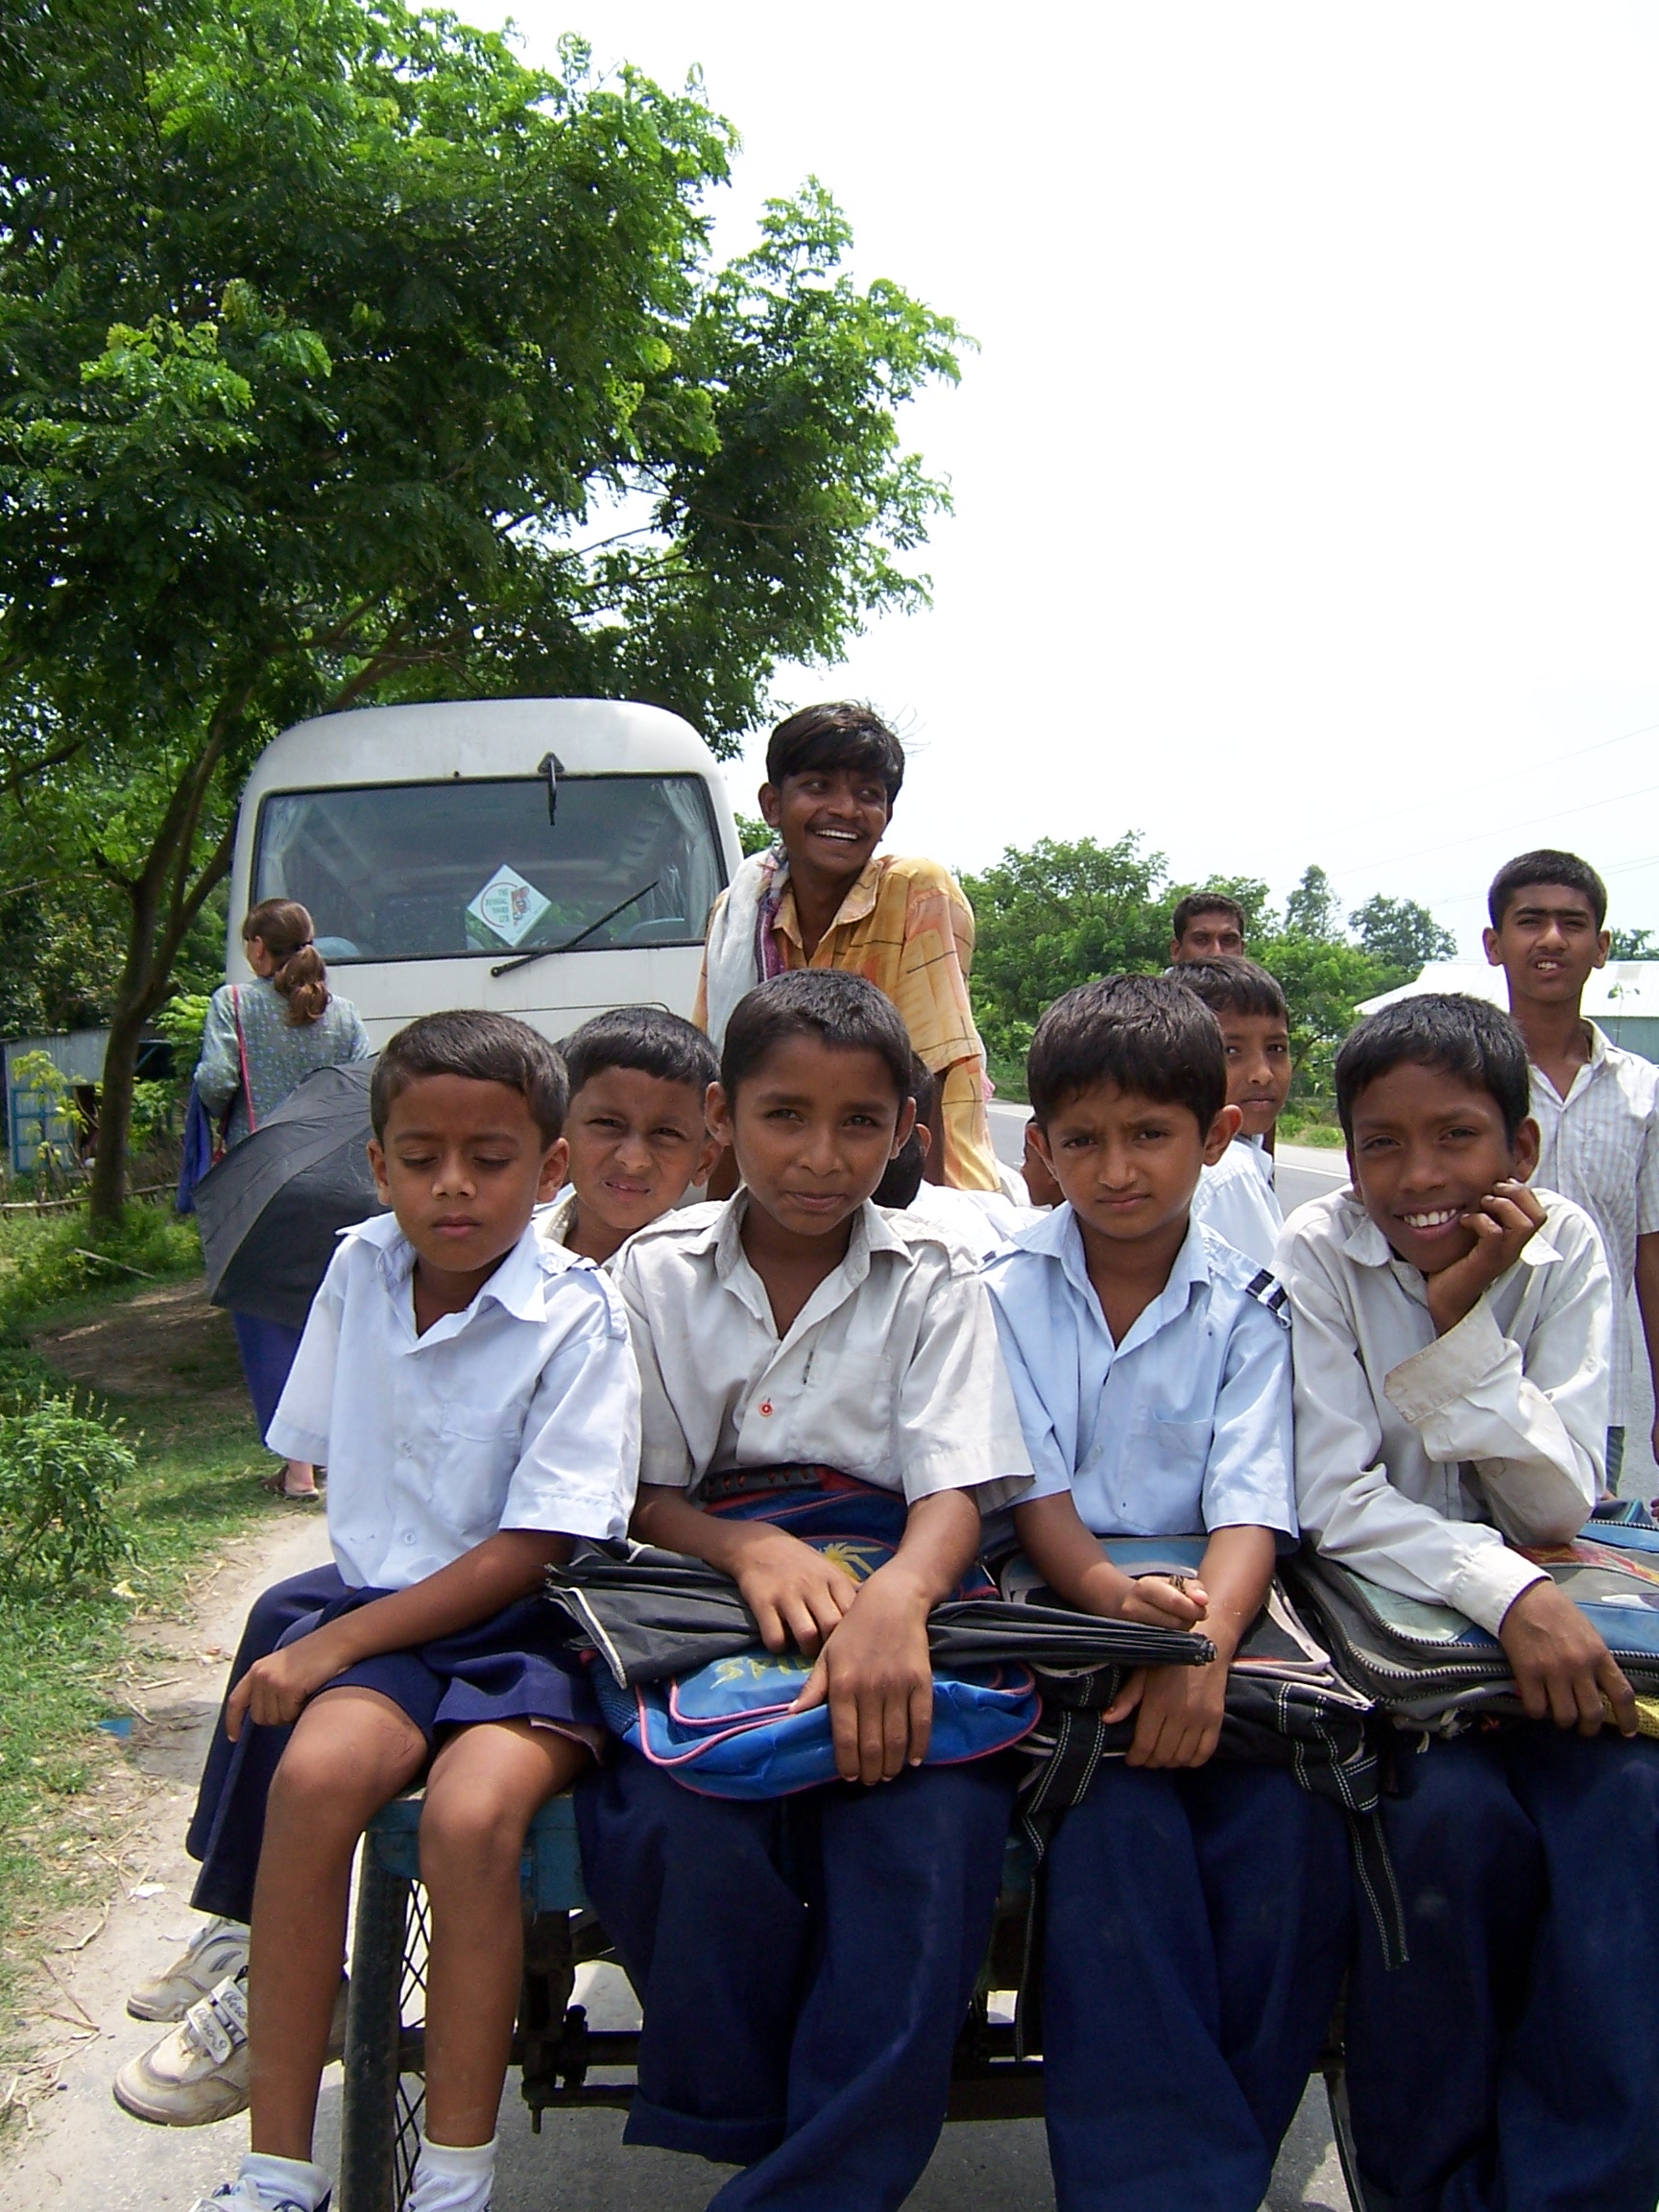 A group of boys traveling on a cart